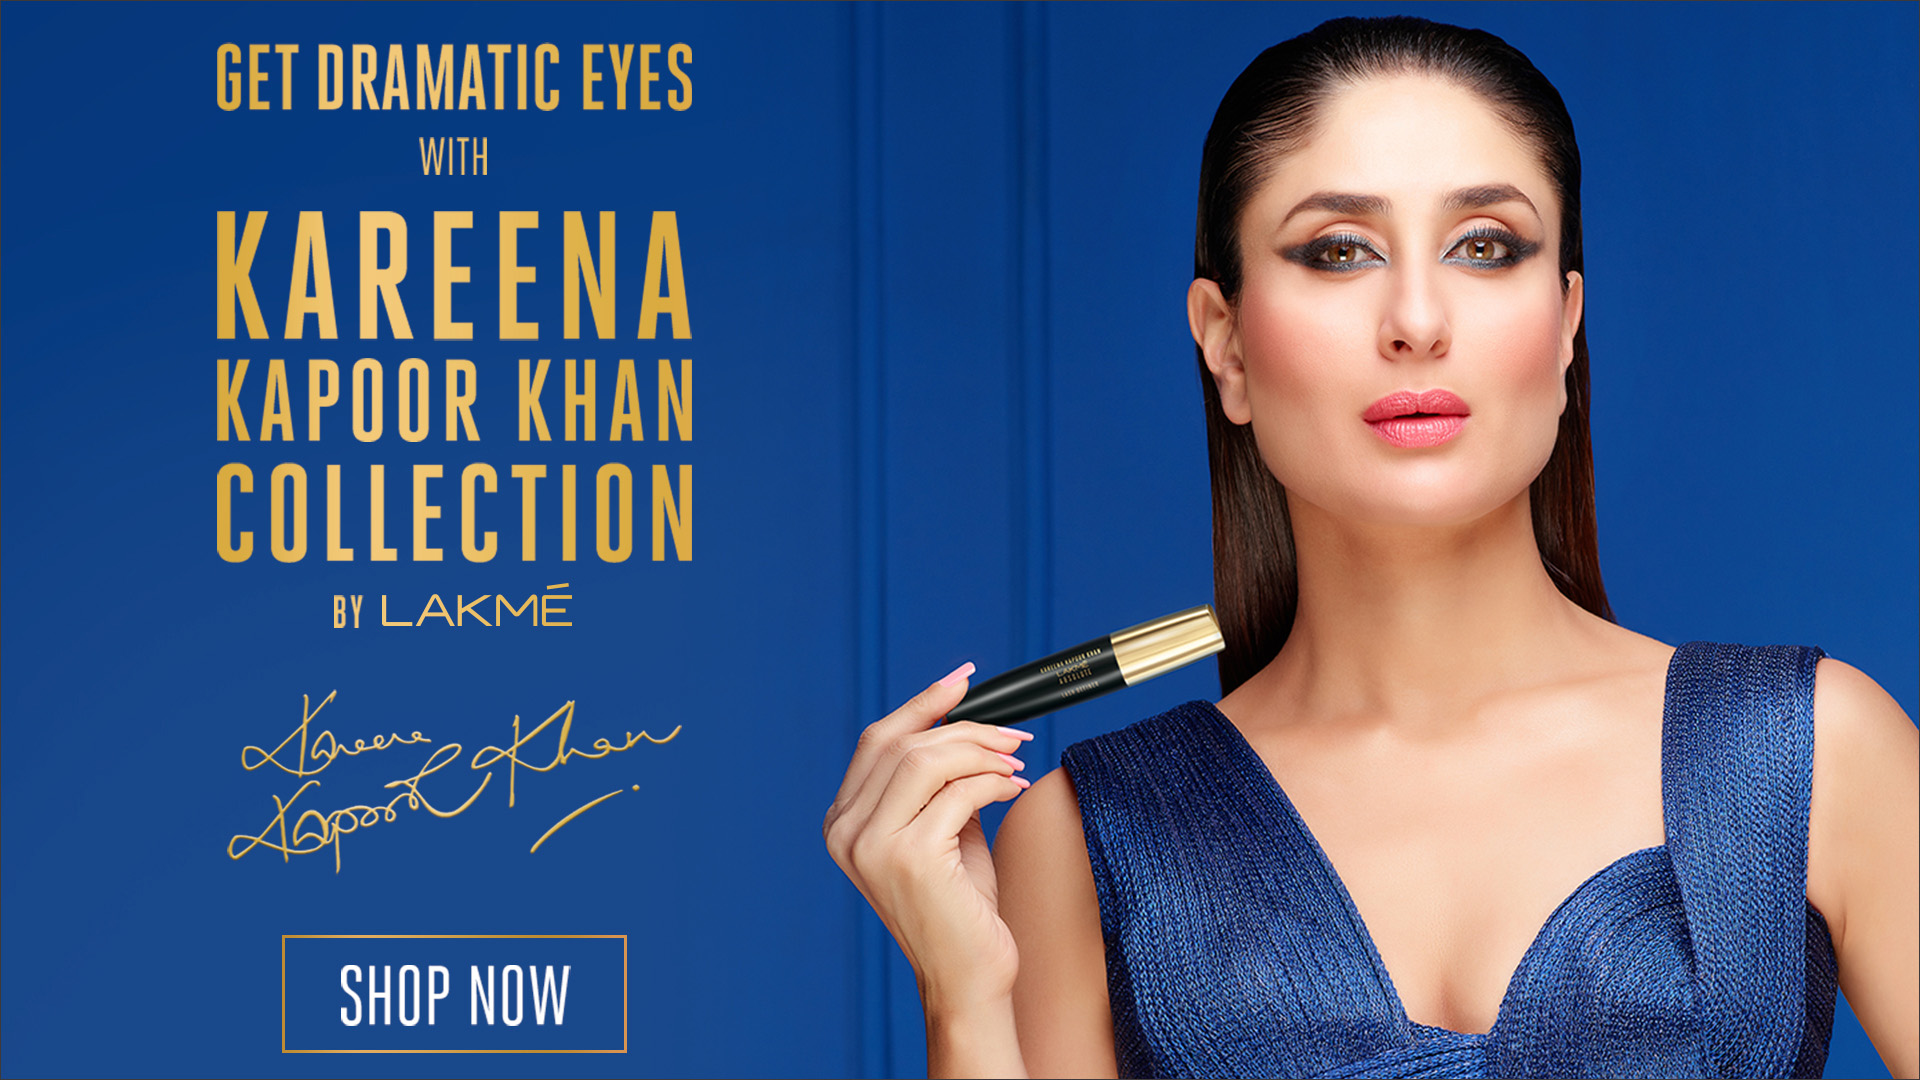 Lakme Desktop 1920x1080 01 copy - Lakme Fashion Week August 2018 - Launch of Kareena Kapoor's First signature line!